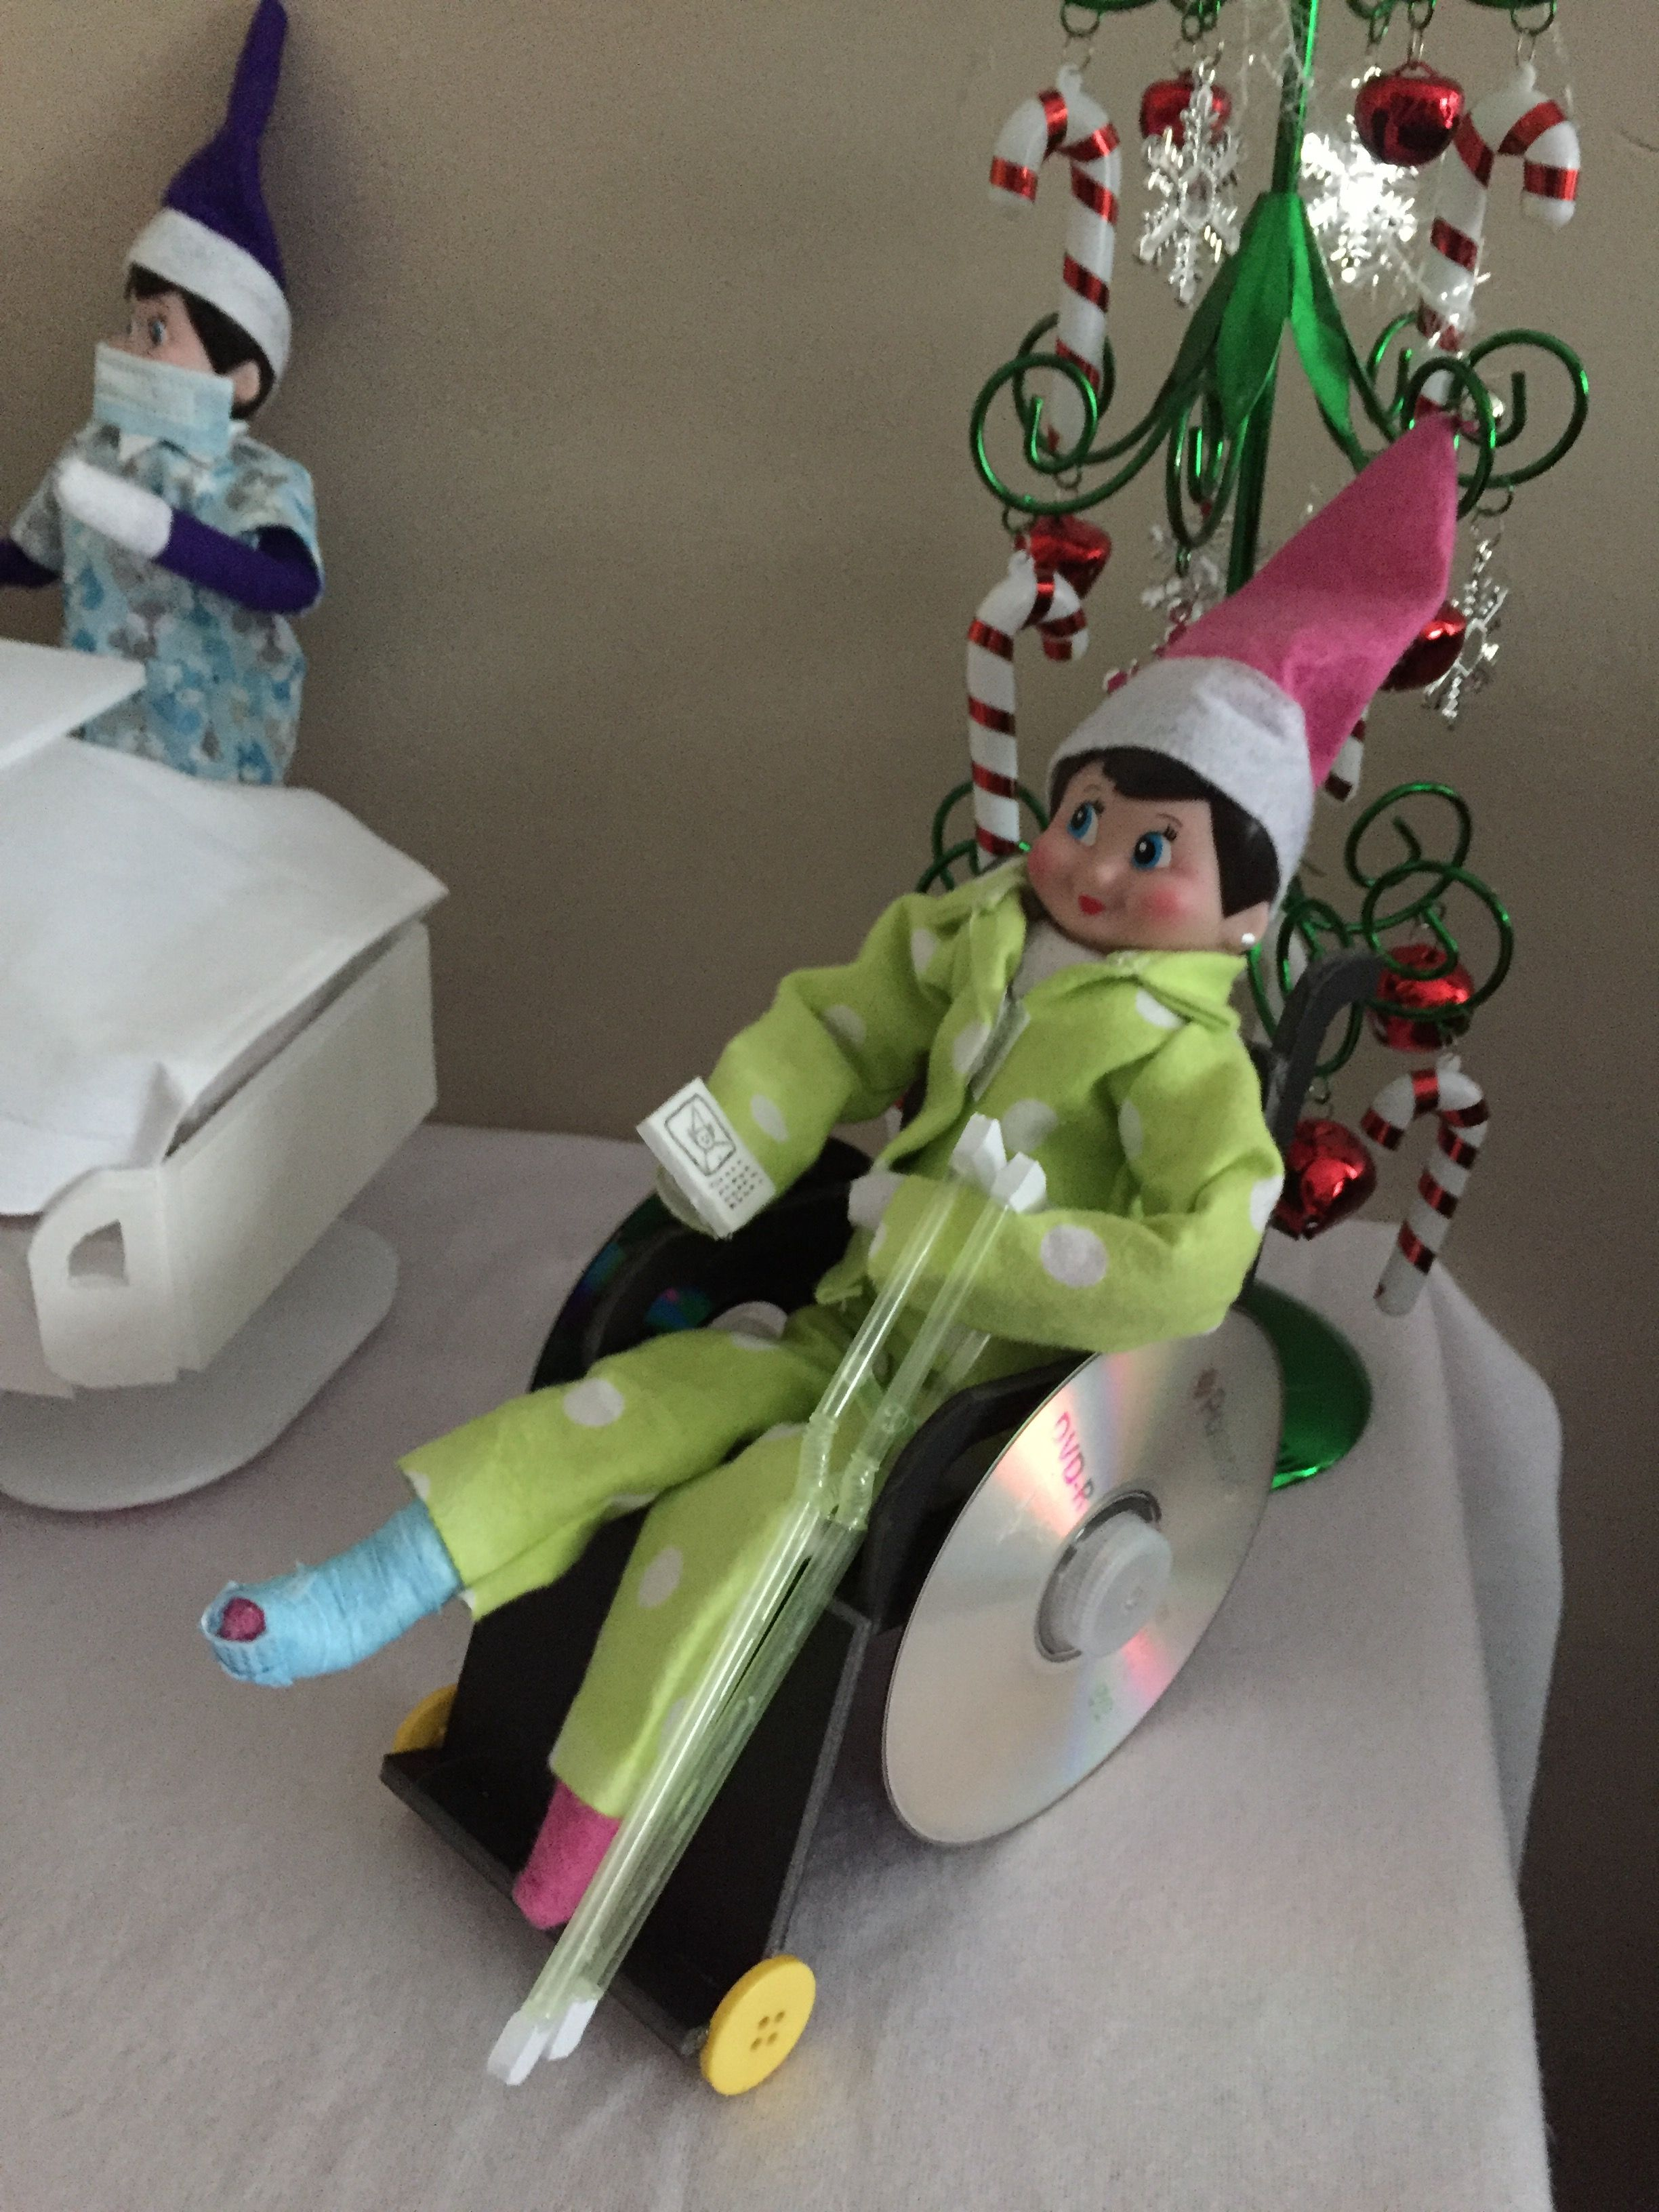 Wheelchair For Elf On The Shelf Elf Fun Elf On The Shelf Elf